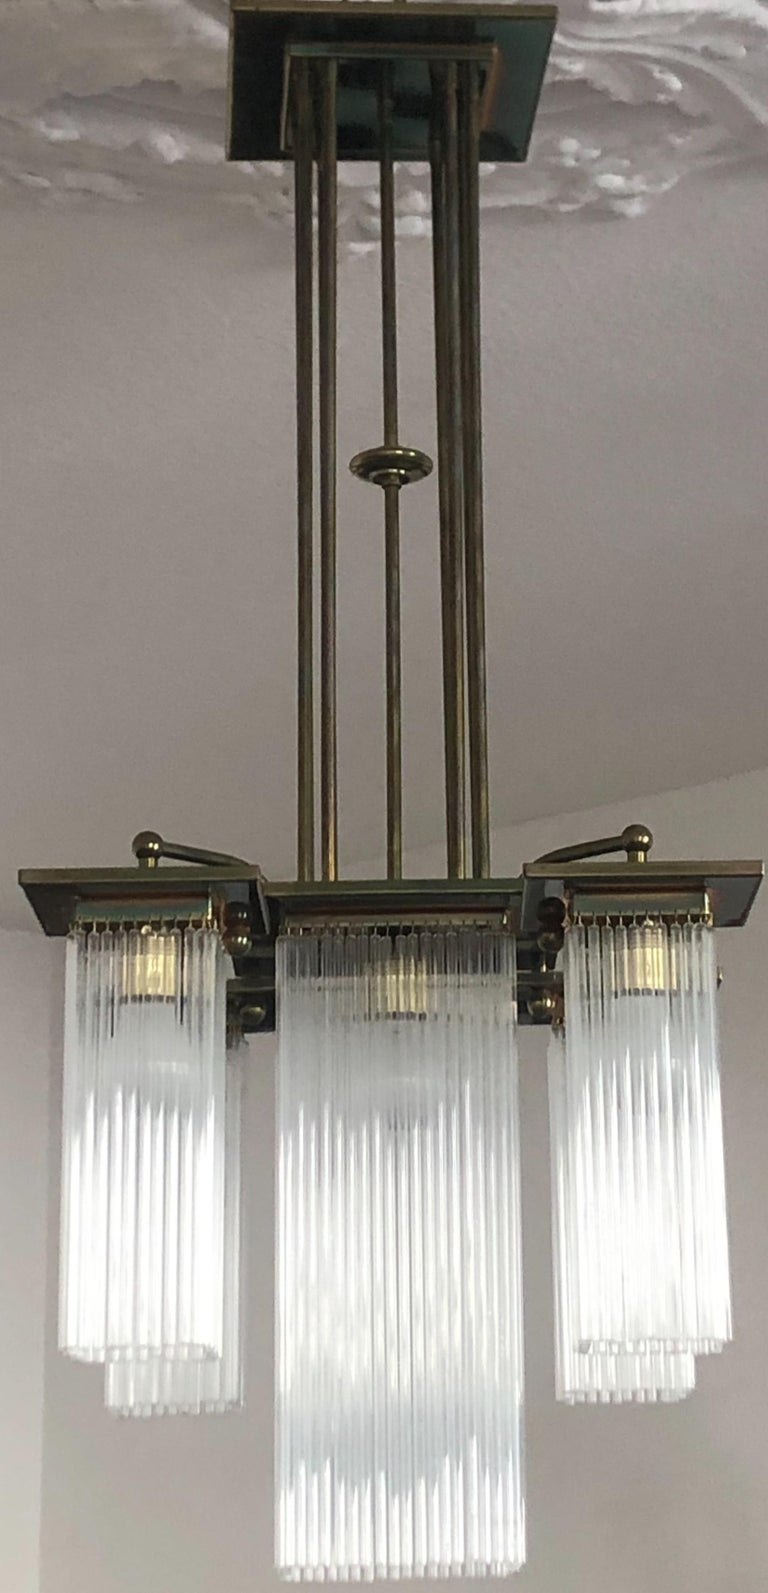 Fine Brass and Glass Chandelier from Vienna, Koloman Moser, Otto Wagner Style In Excellent Condition For Sale In Wiesbaden, Hessen